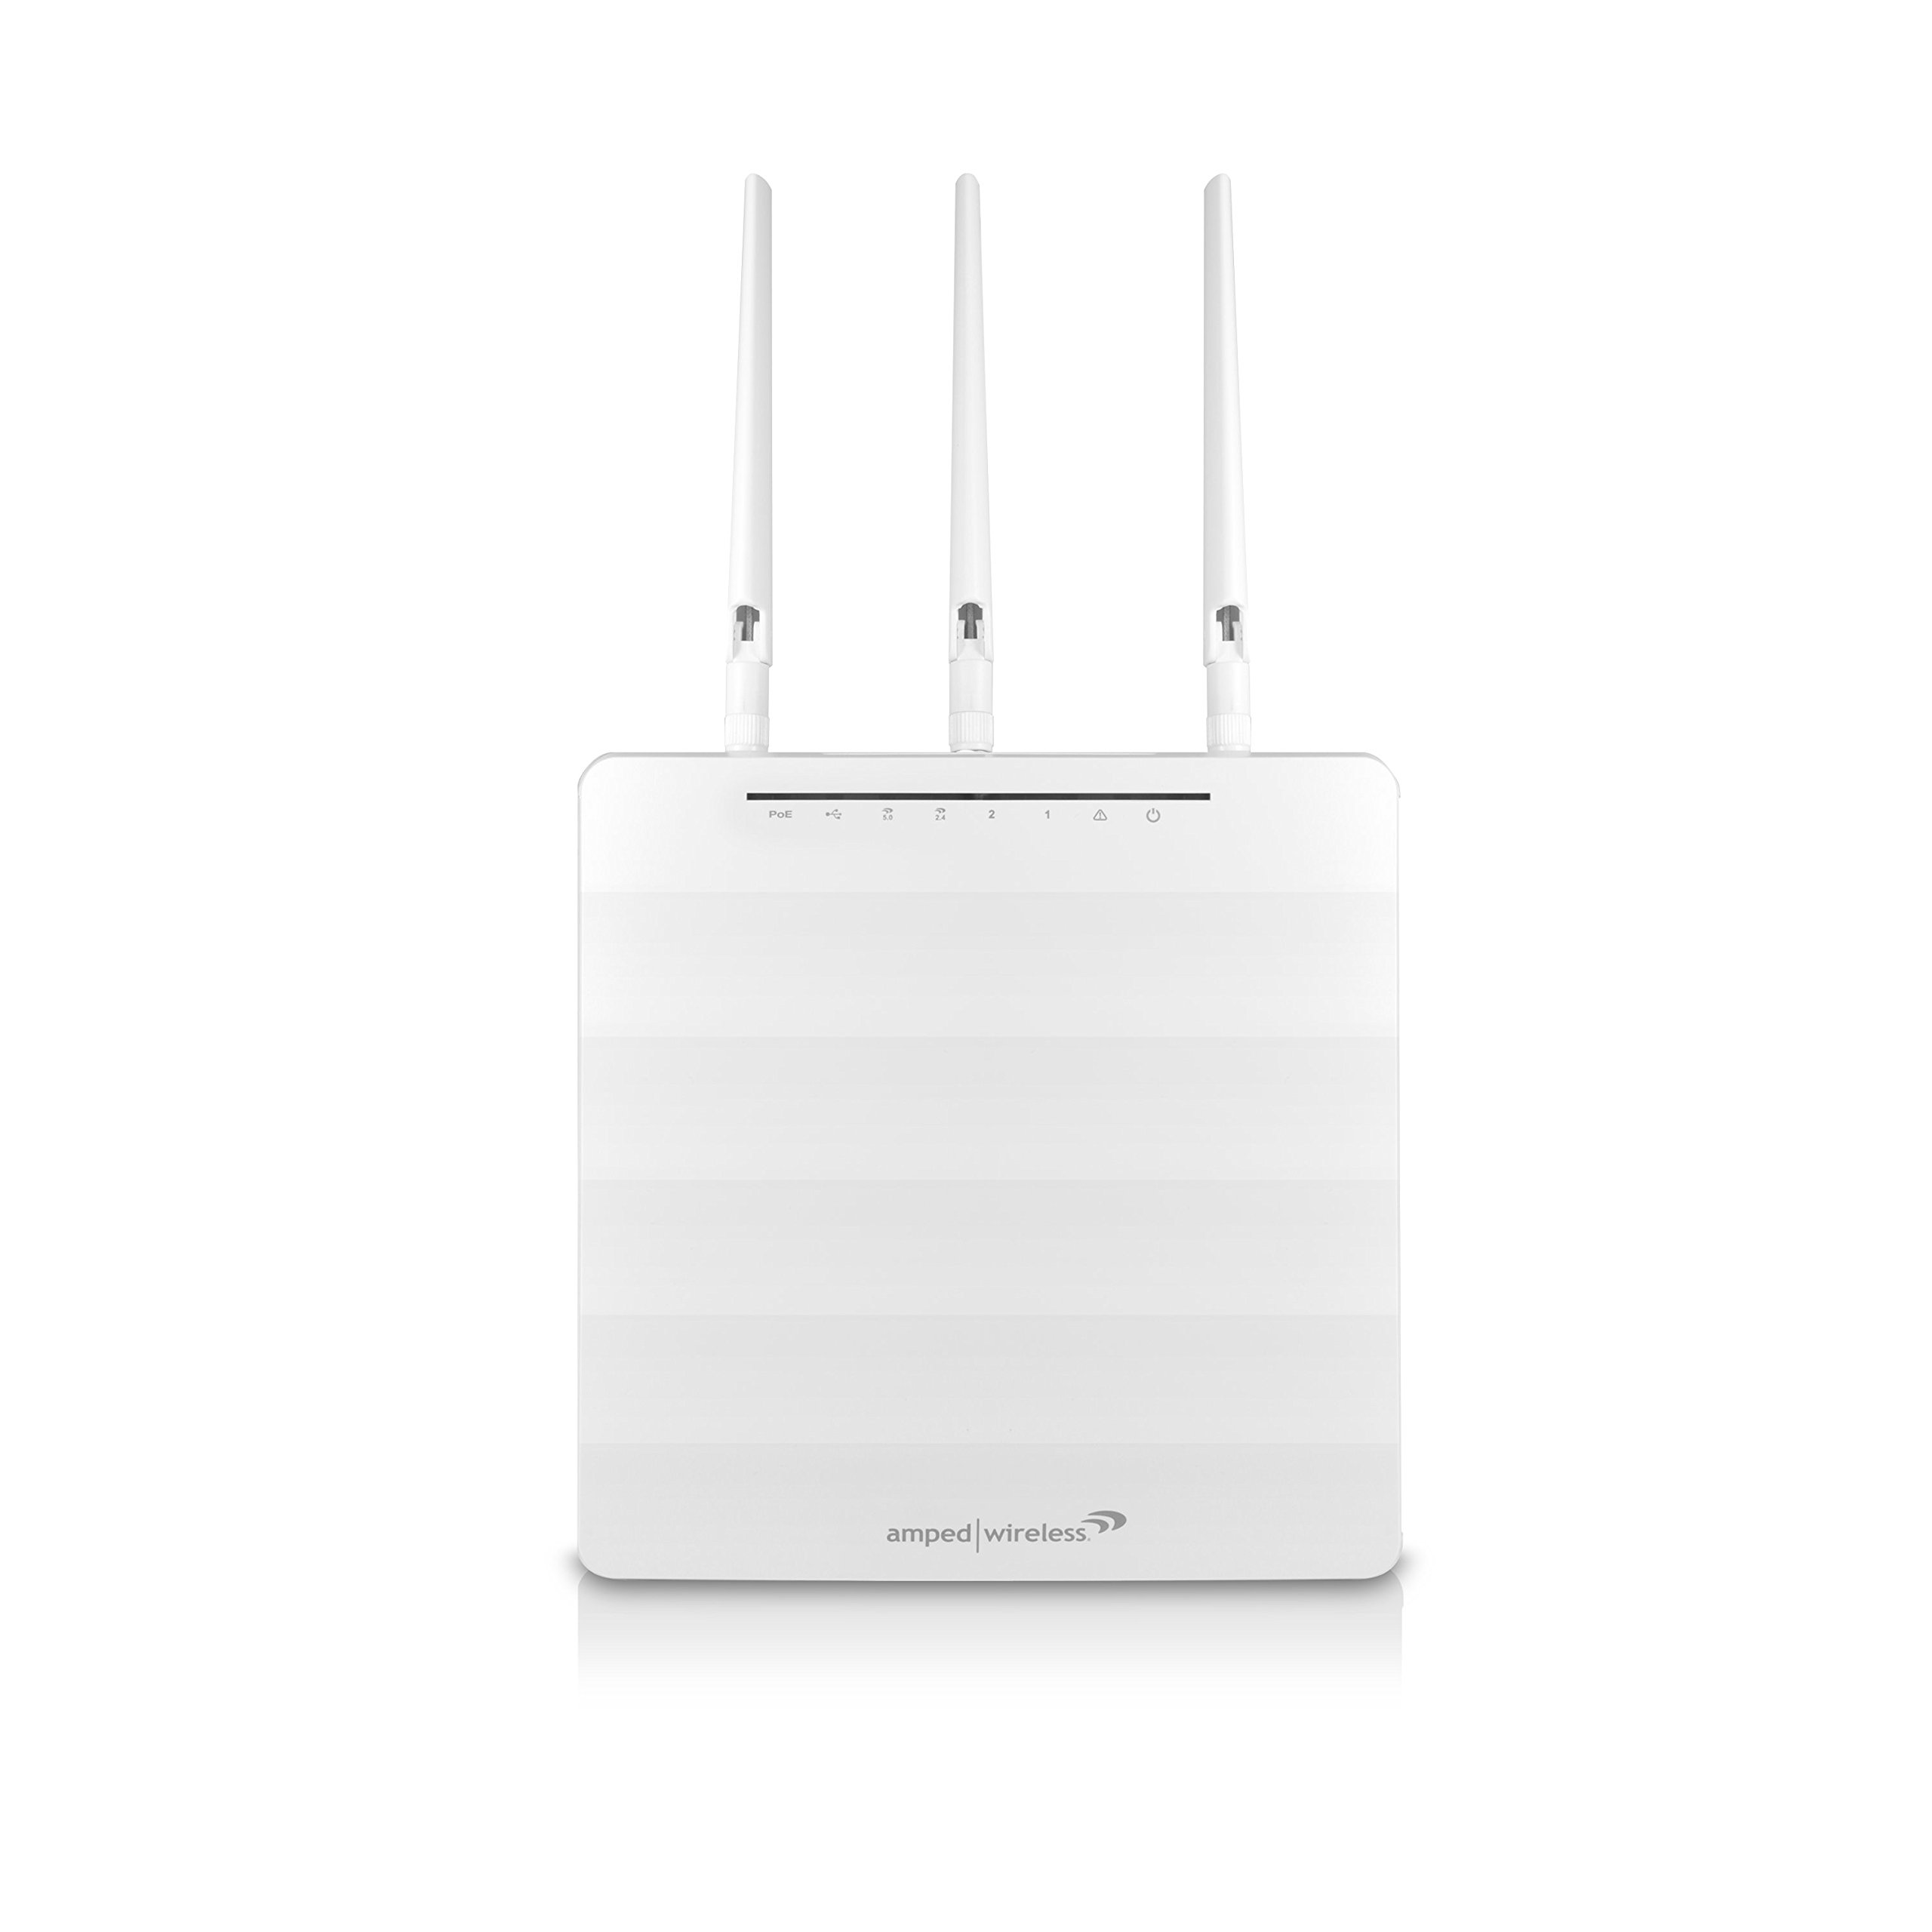 Amped Wireless ProSeries High Power AC1750 Wi-Fi Range Extender / Bridge (REB175P) by Amped (Image #2)